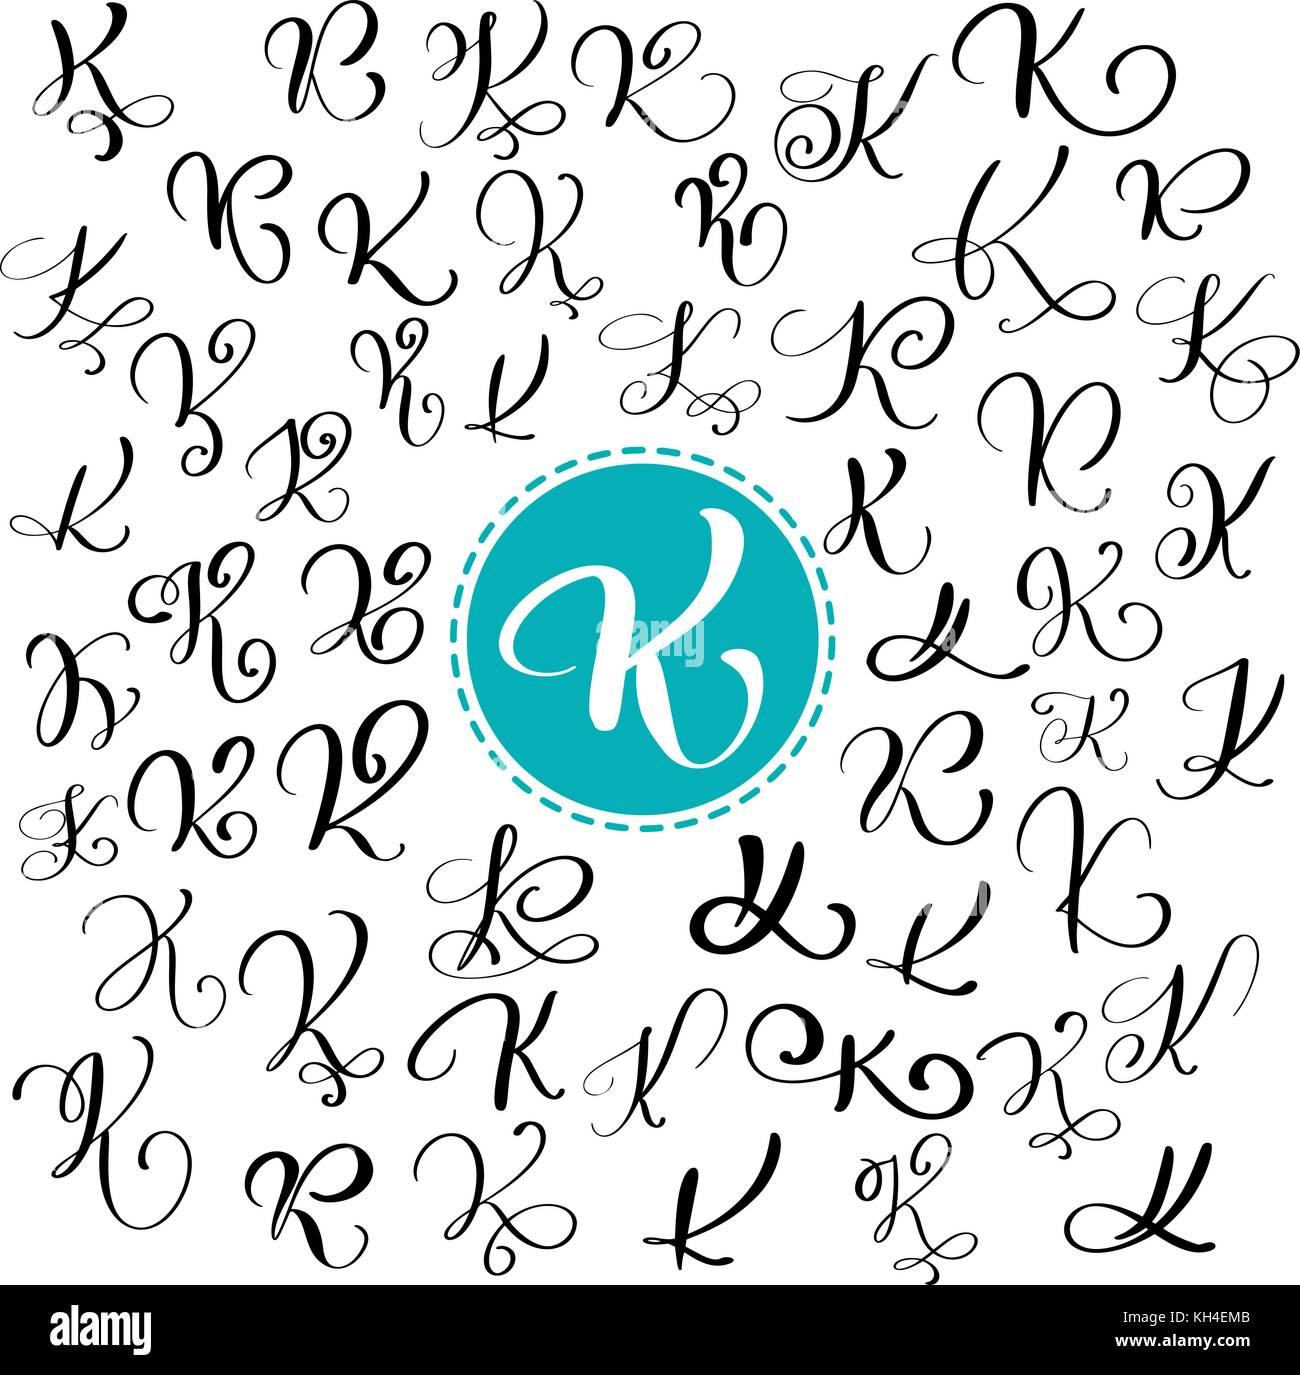 Set Of Hand Drawn Vector Calligraphy Letter K Script Font Isolated Letters Written With Ink Handwritten Brush Style Lettering For Logos Packaging